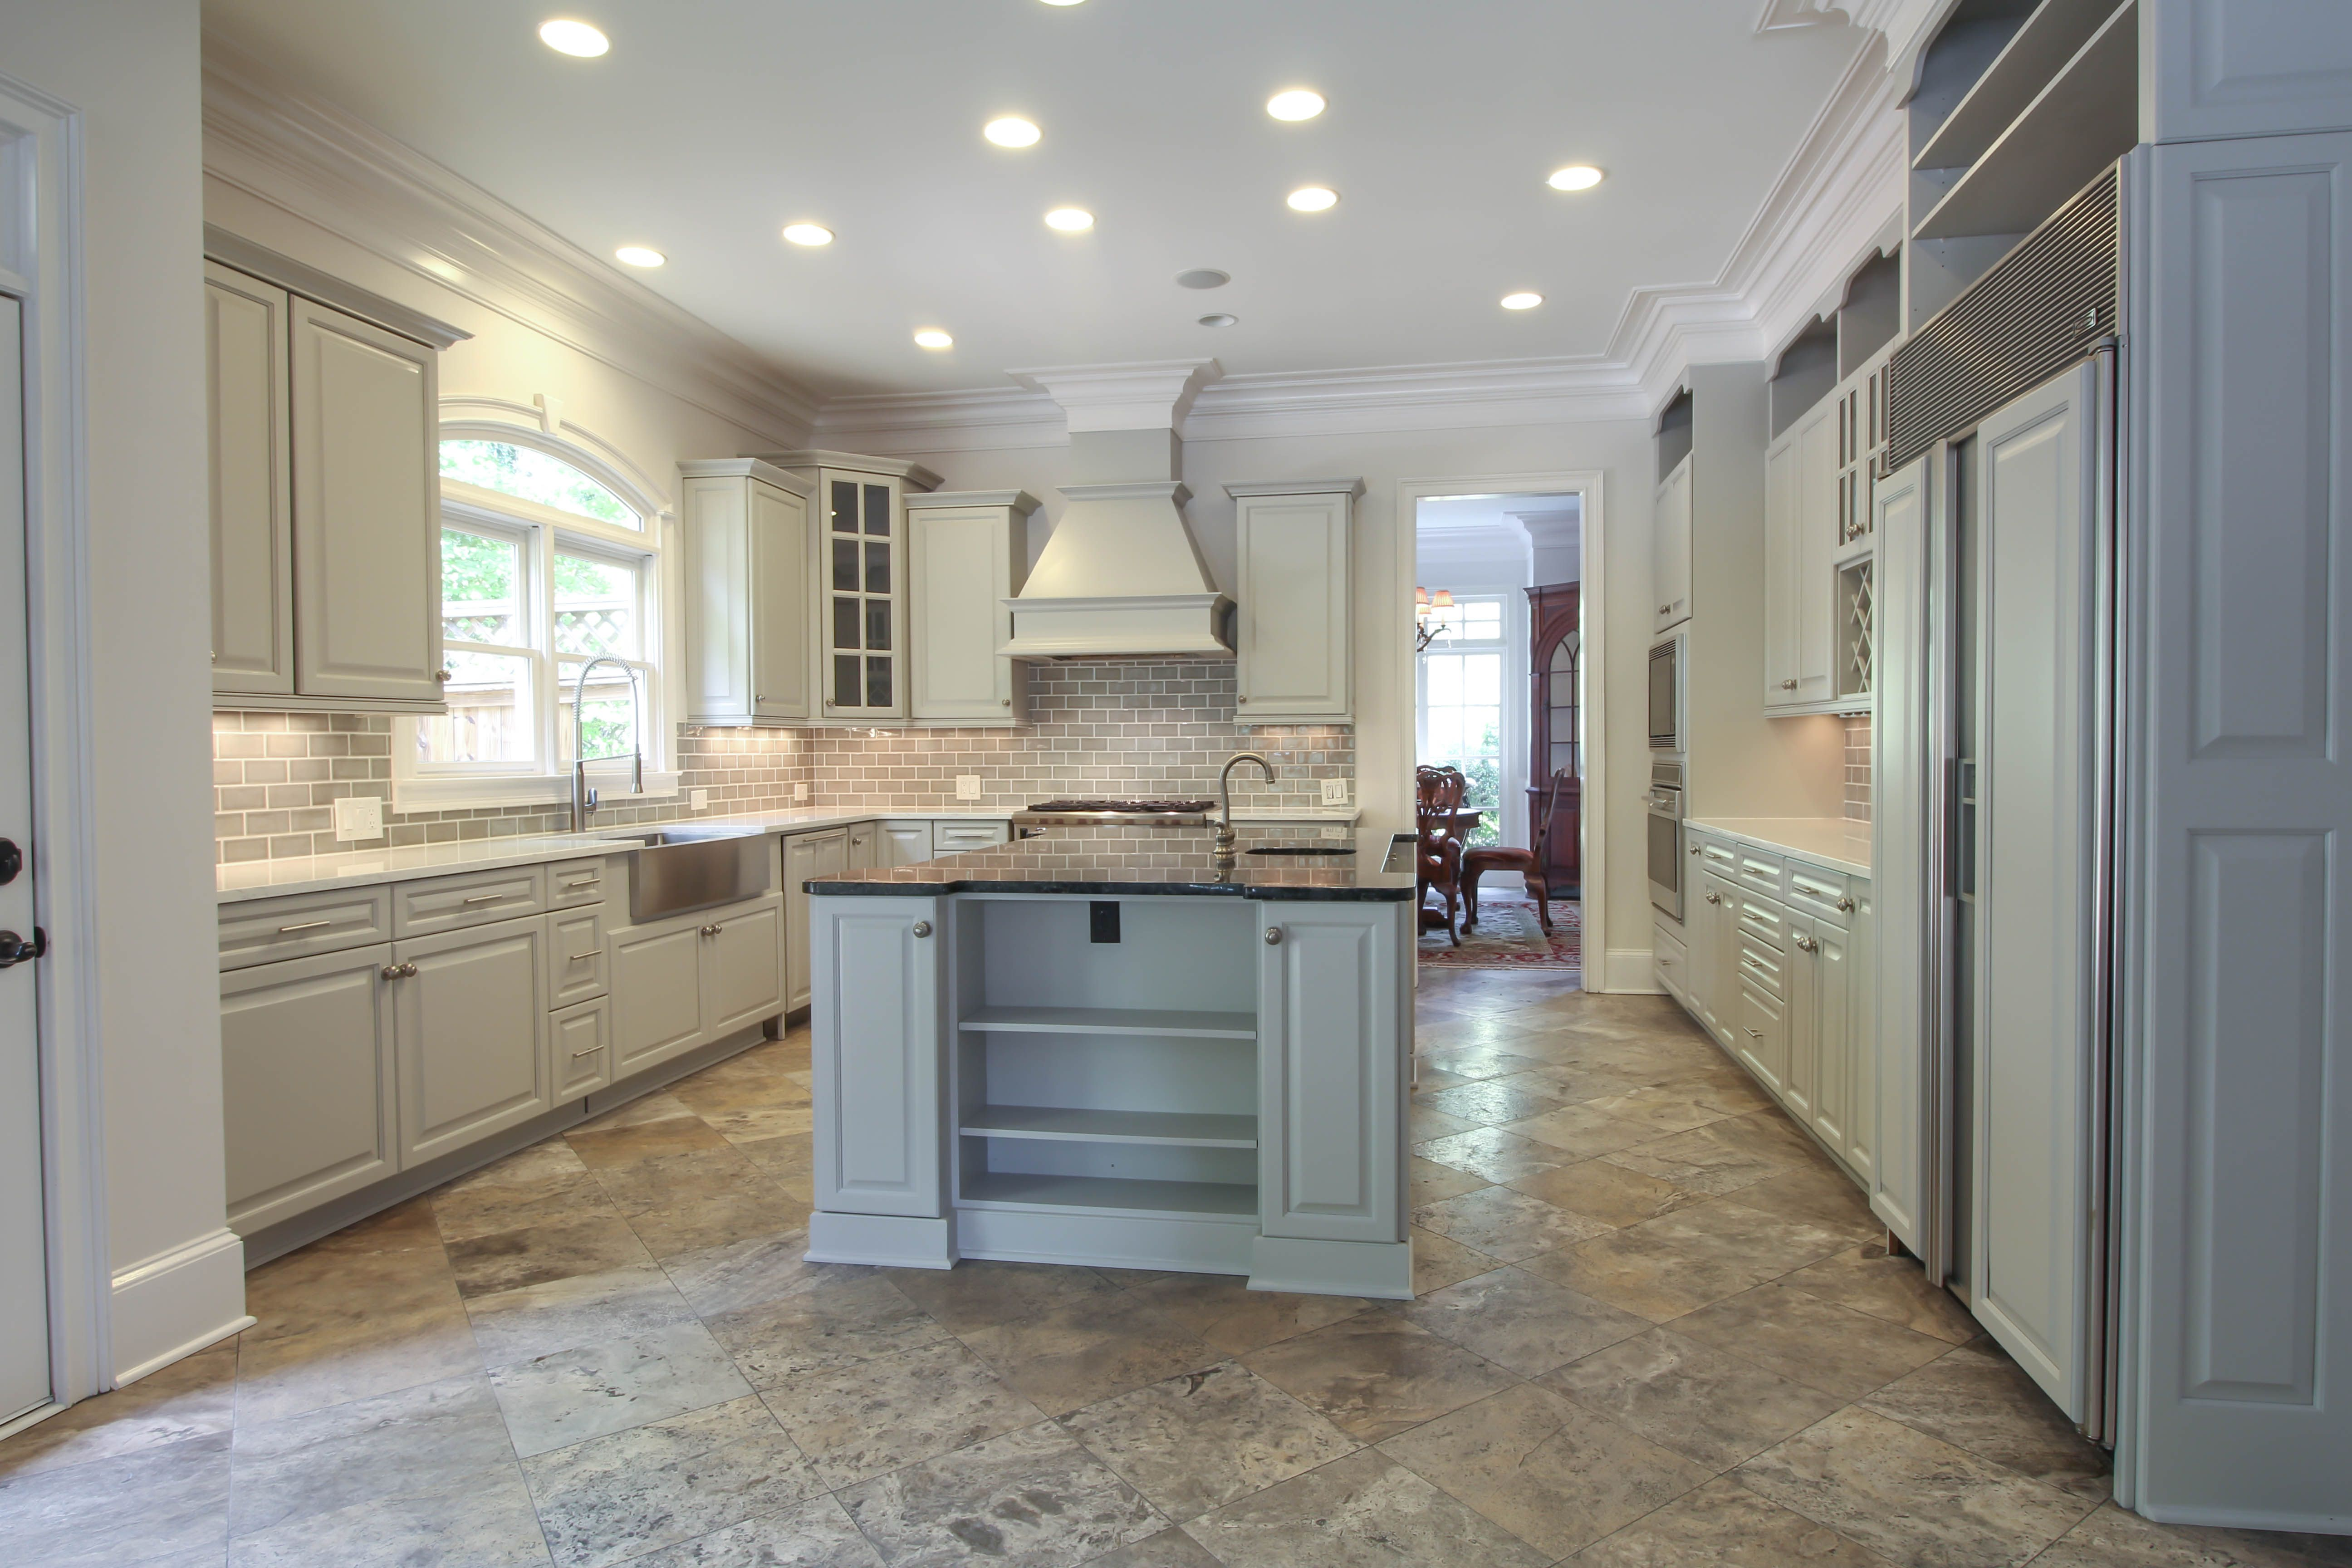 Creative Cabinets and Faux Finishes